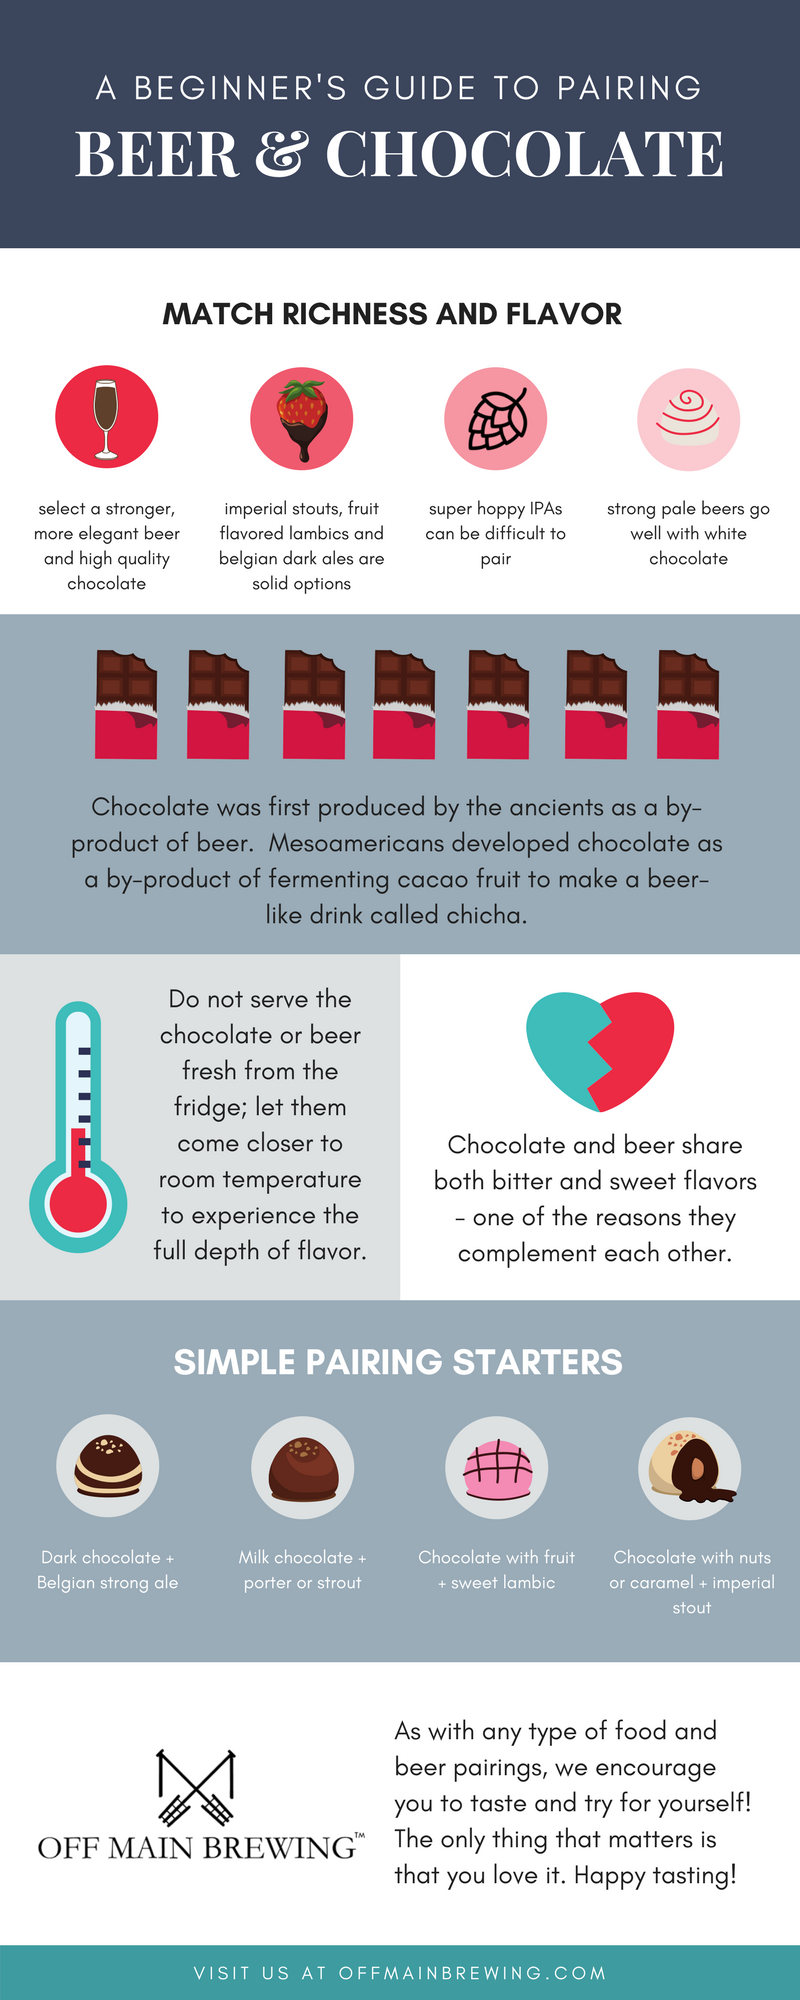 beer and chocolate pairing infographic | off main brewing